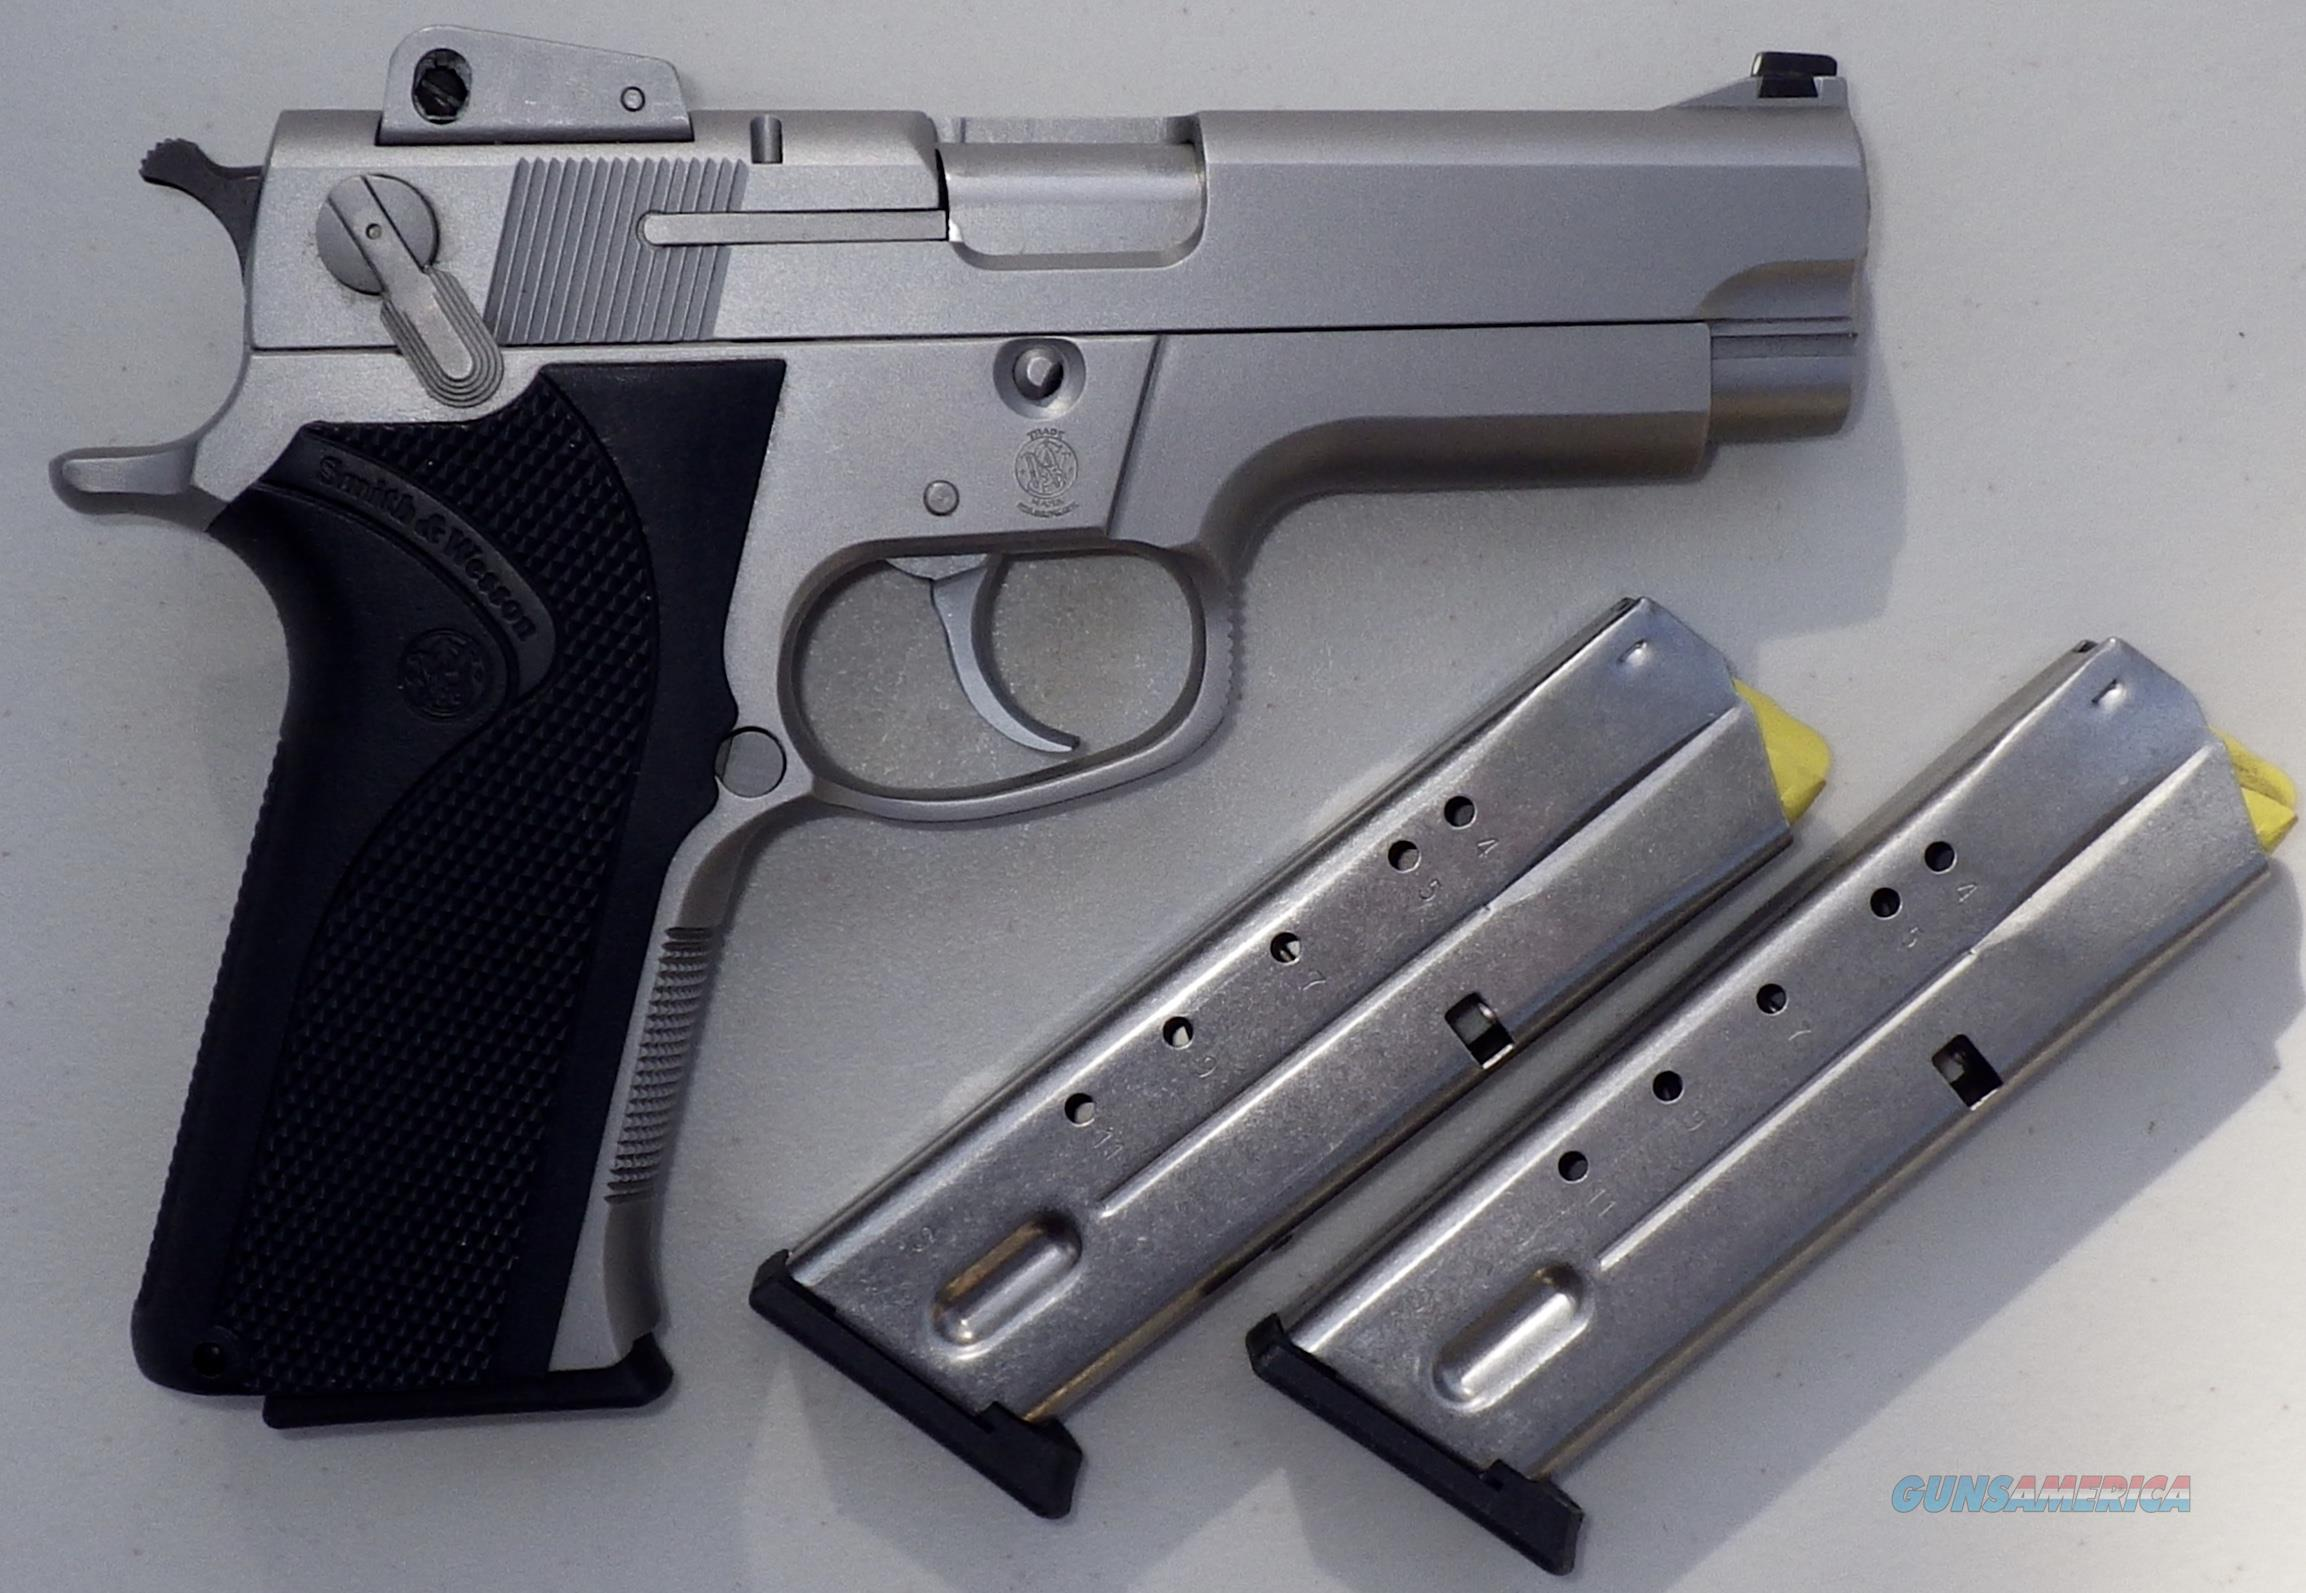 Smith & Wesson 4006 .40 S&W, 3 magazines, new condition wth box and papers  Guns > Pistols > Smith & Wesson Pistols - Autos > Steel Frame